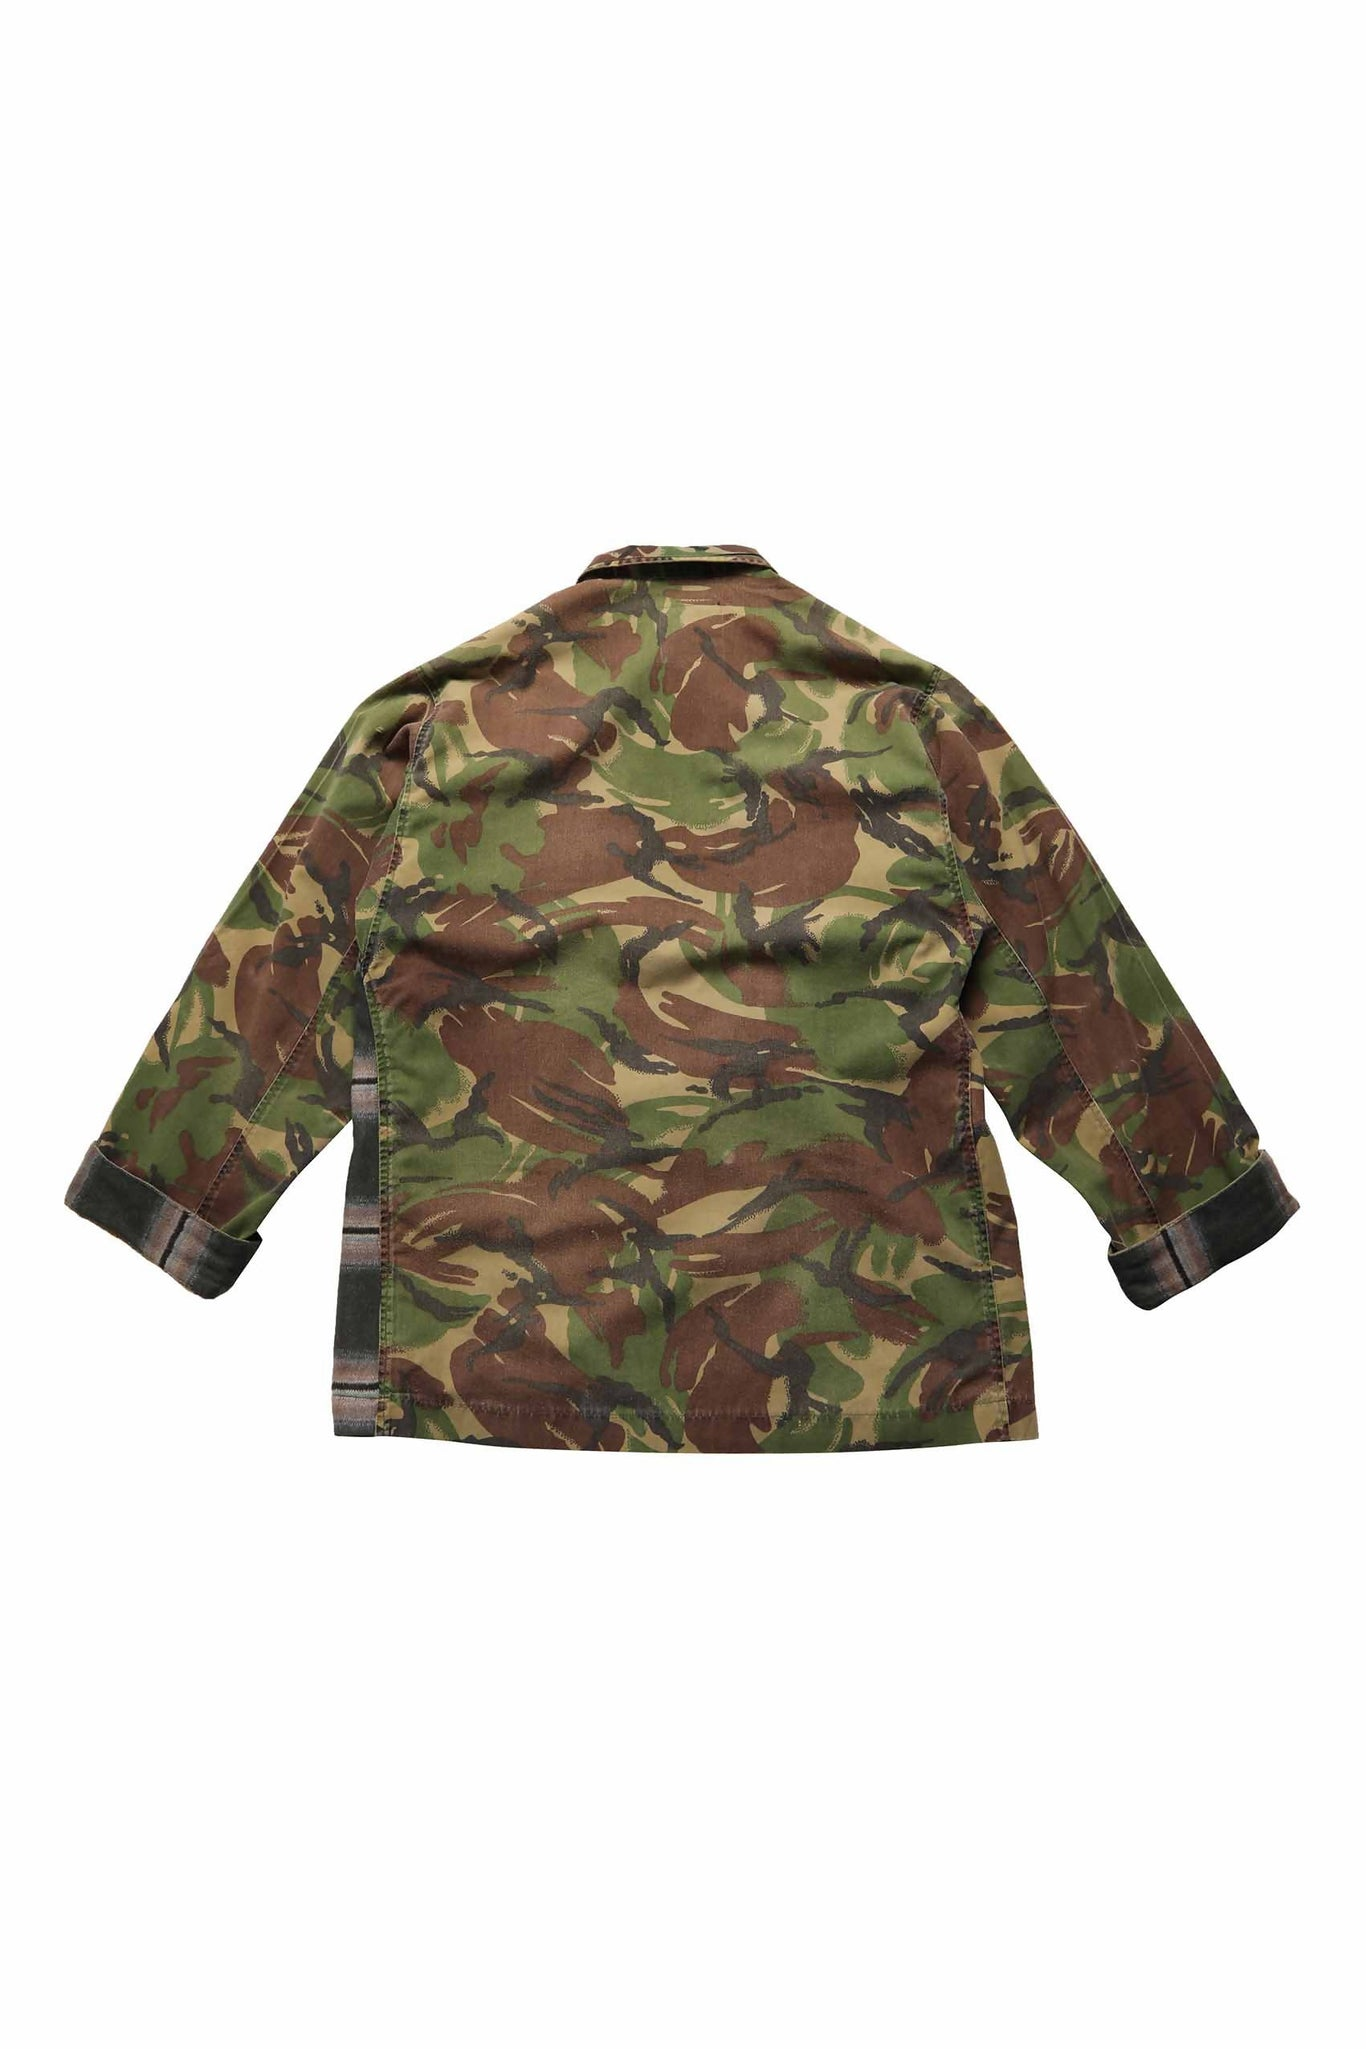 GBJ9HC CHECKED ARMY JACKET